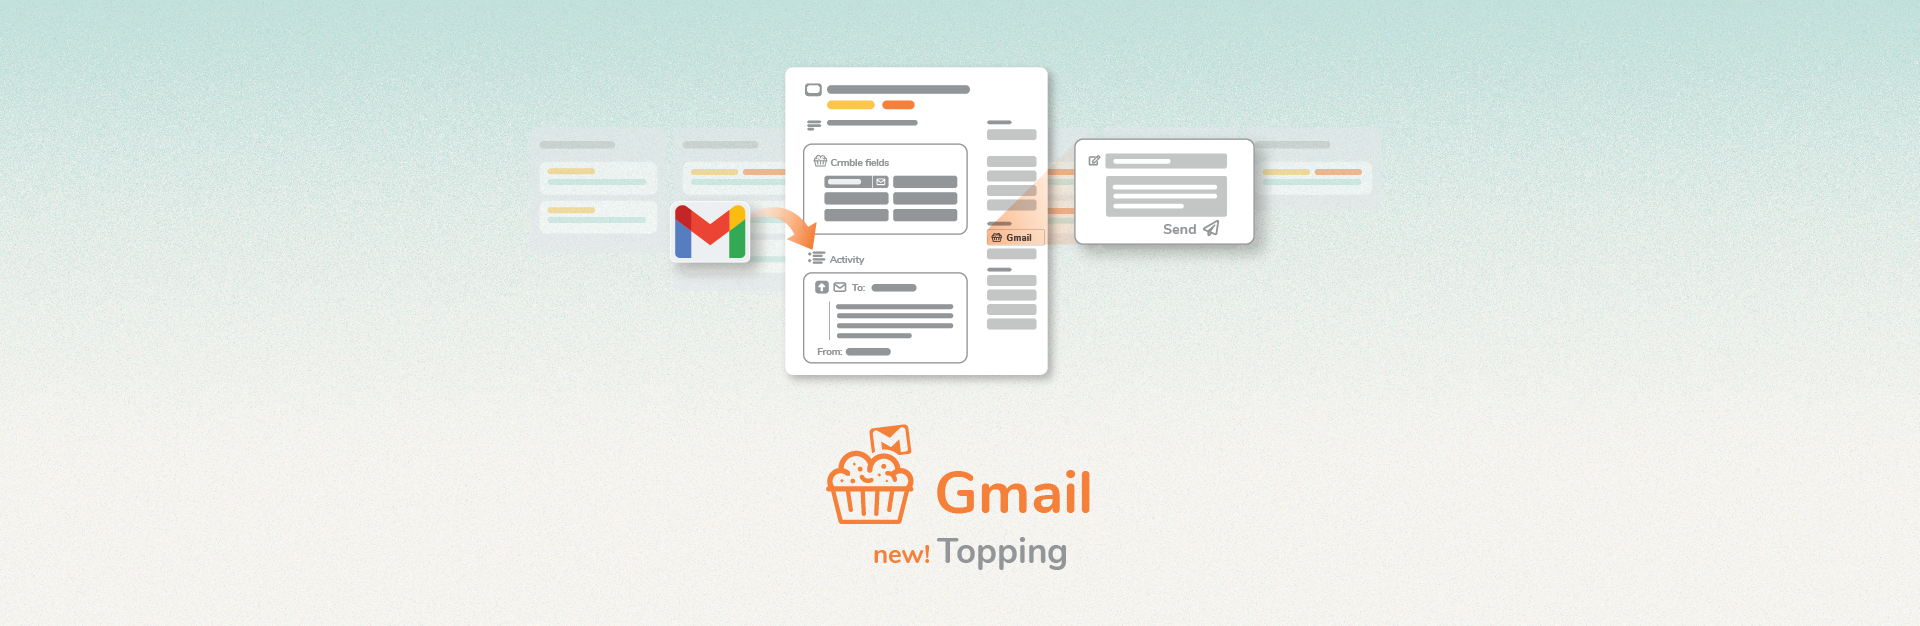 Gmail Topping to send and follow up on mails without leaving Crmble